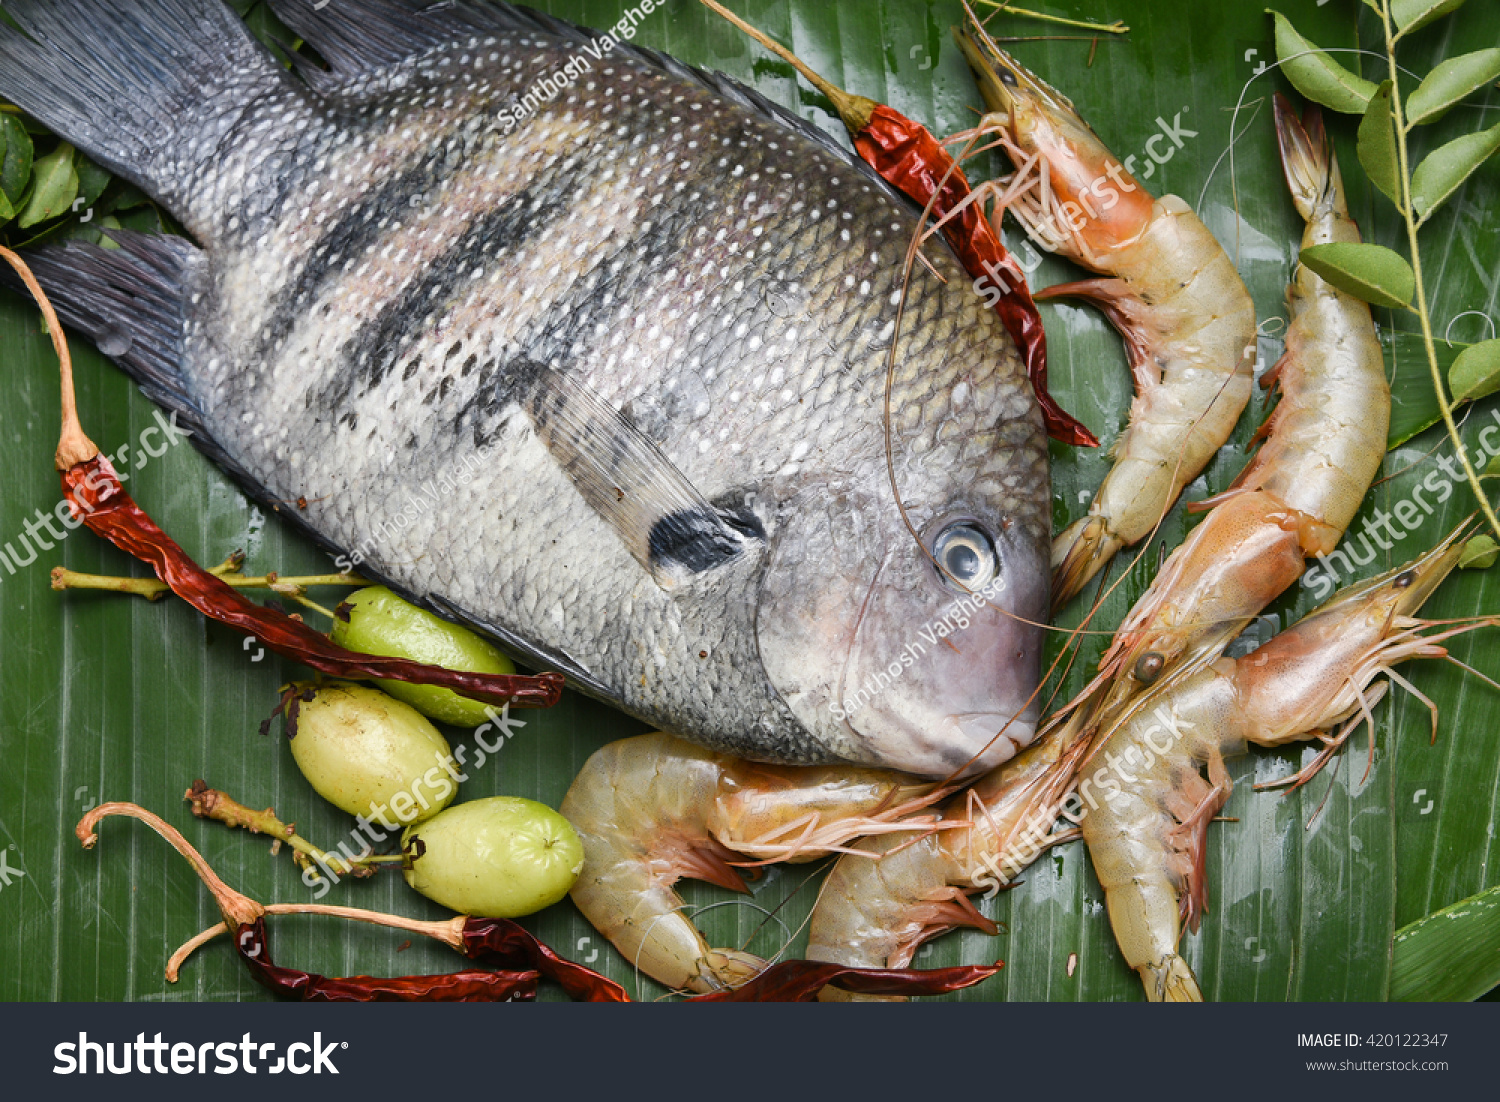 Freshwater fish kerala - Pearl Spot Fish Karimeen And Shrimp In Kerala India Fresh Raw Fish And Sea